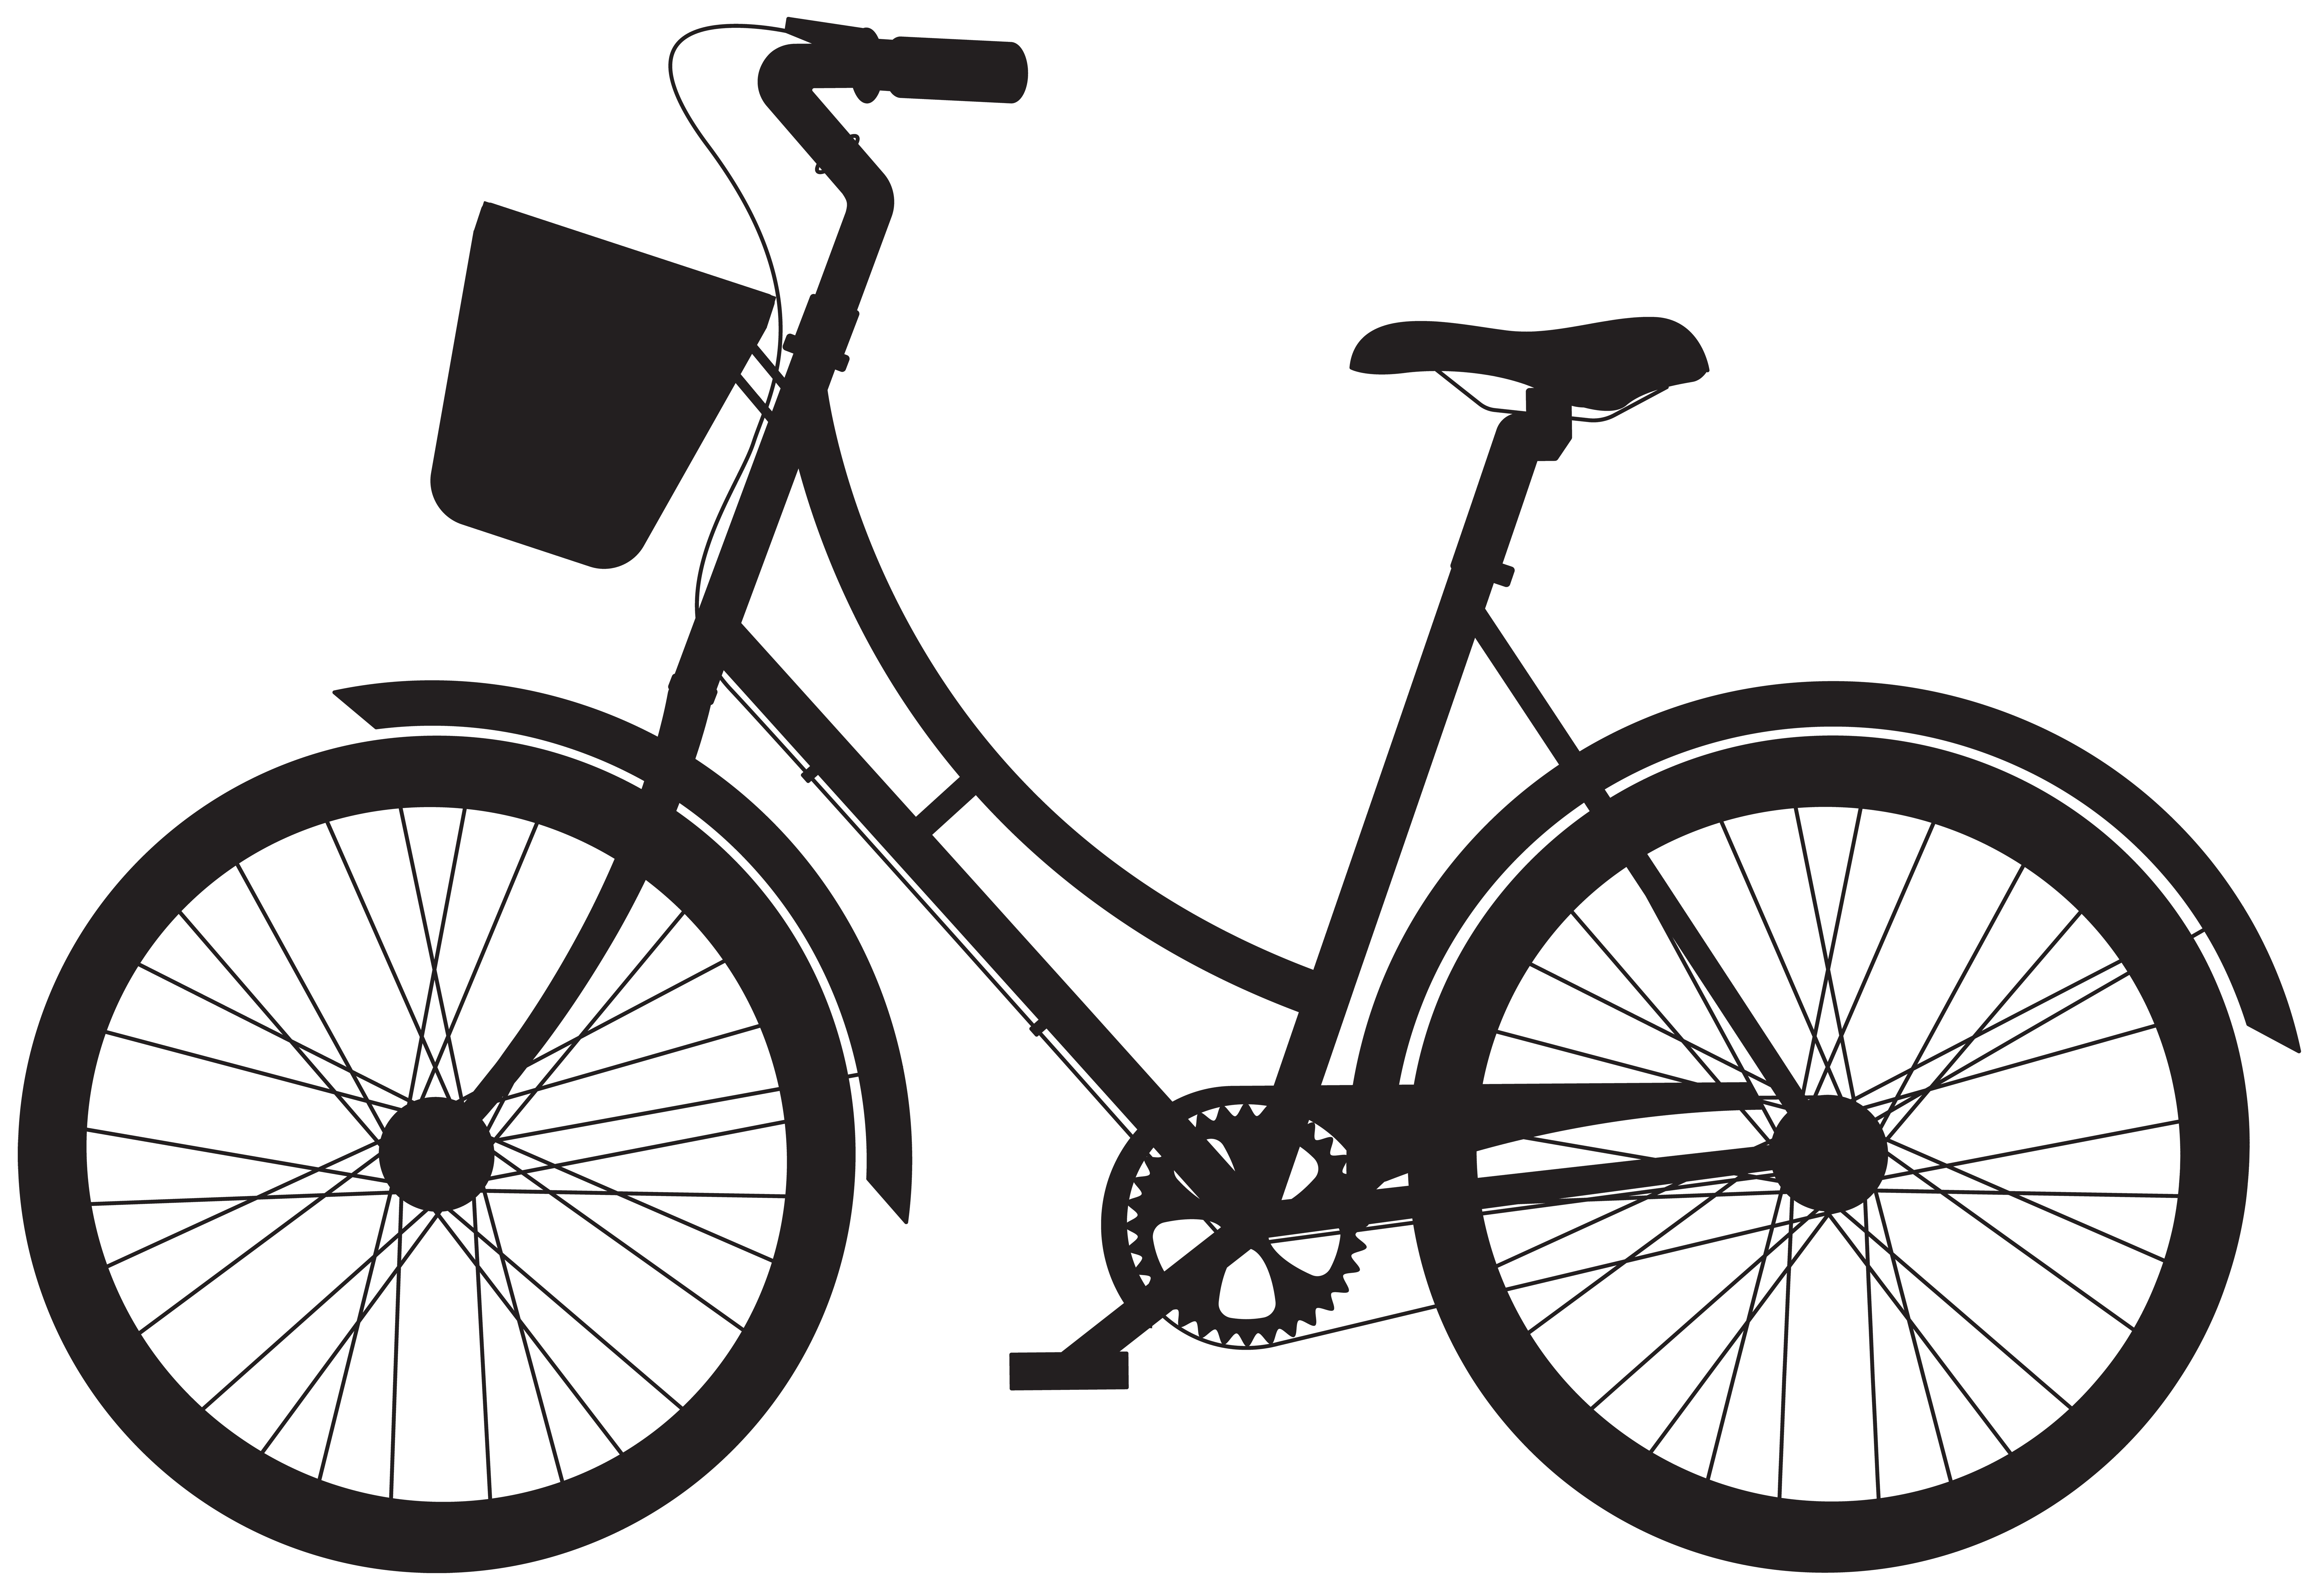 Bicycle with basket png. Bike clipart silhouette